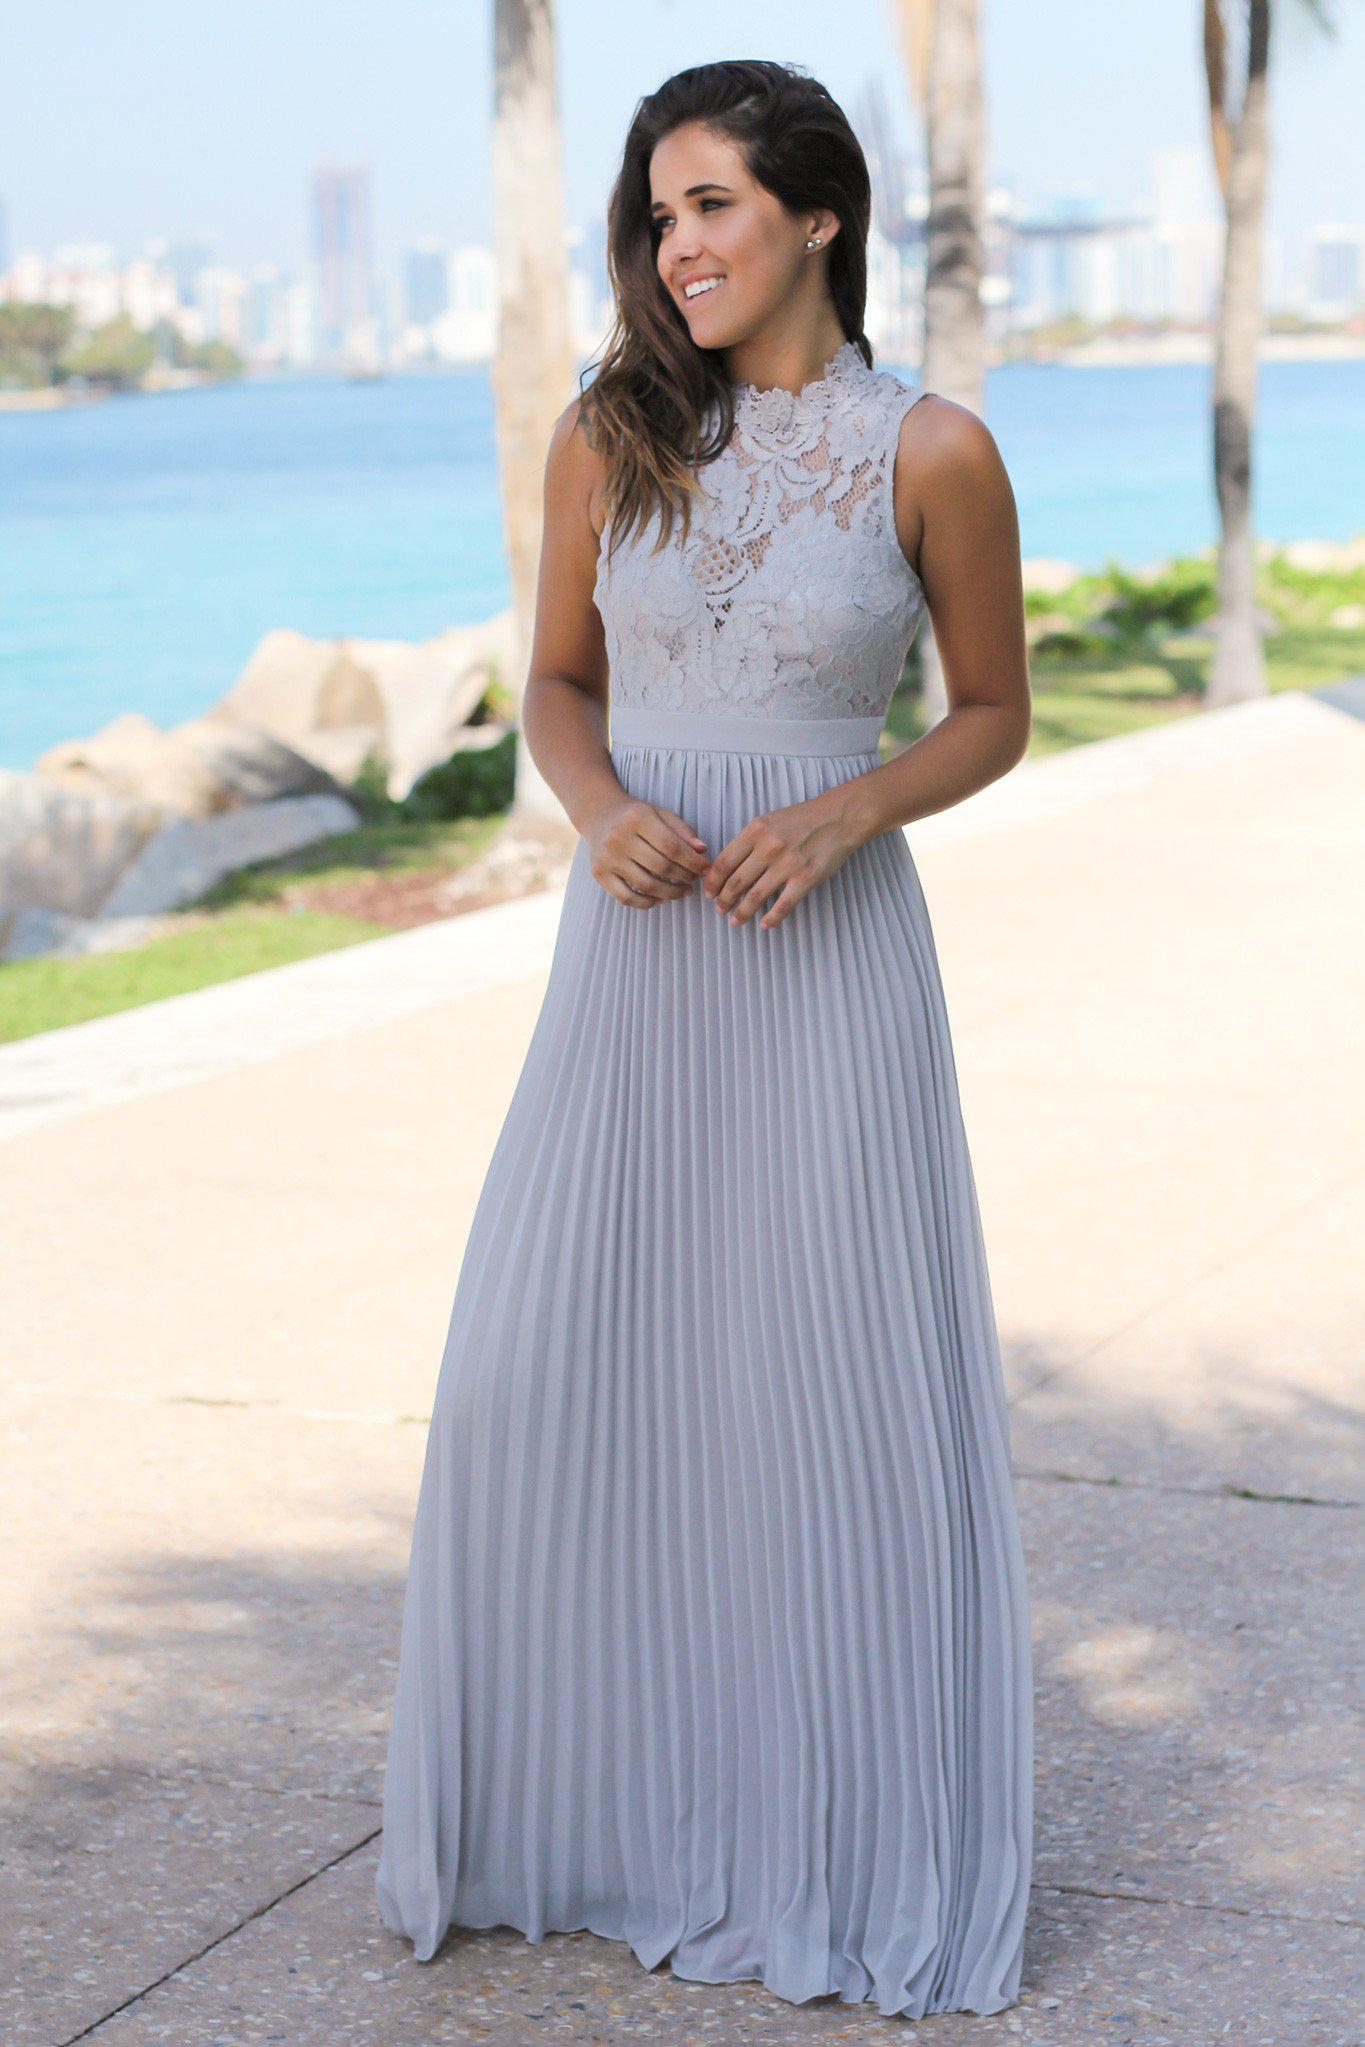 Gray lace maxi dress with pleated skirt bridesmaid dresses gray dress bridesmaid dresses ombrellifo Choice Image